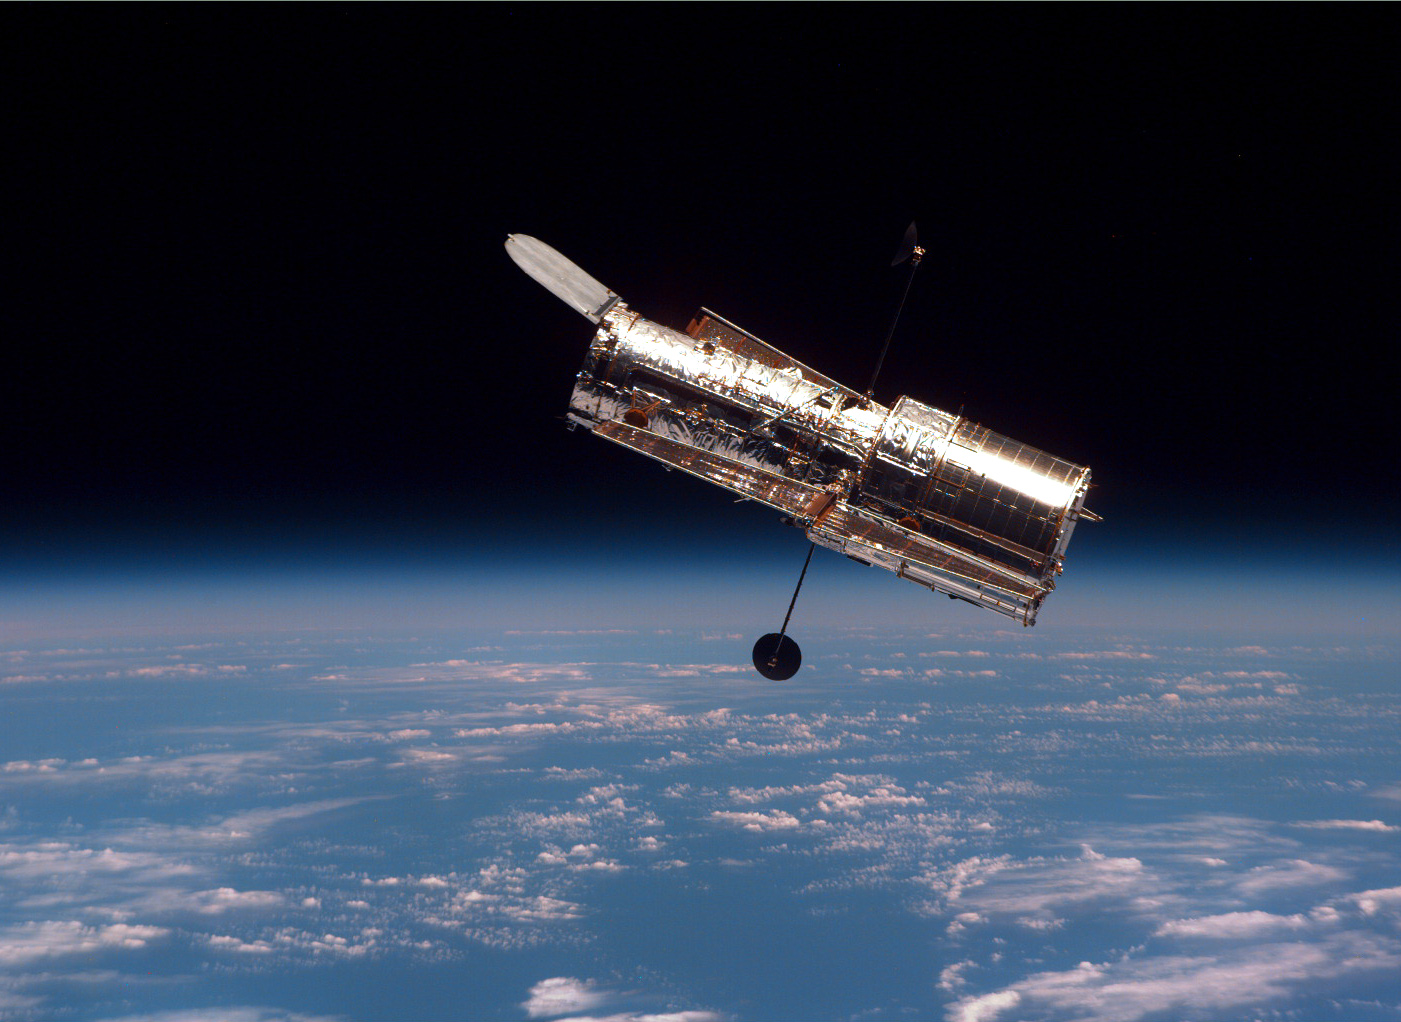 [Image: Hubble_in_free_orbit.jpg]